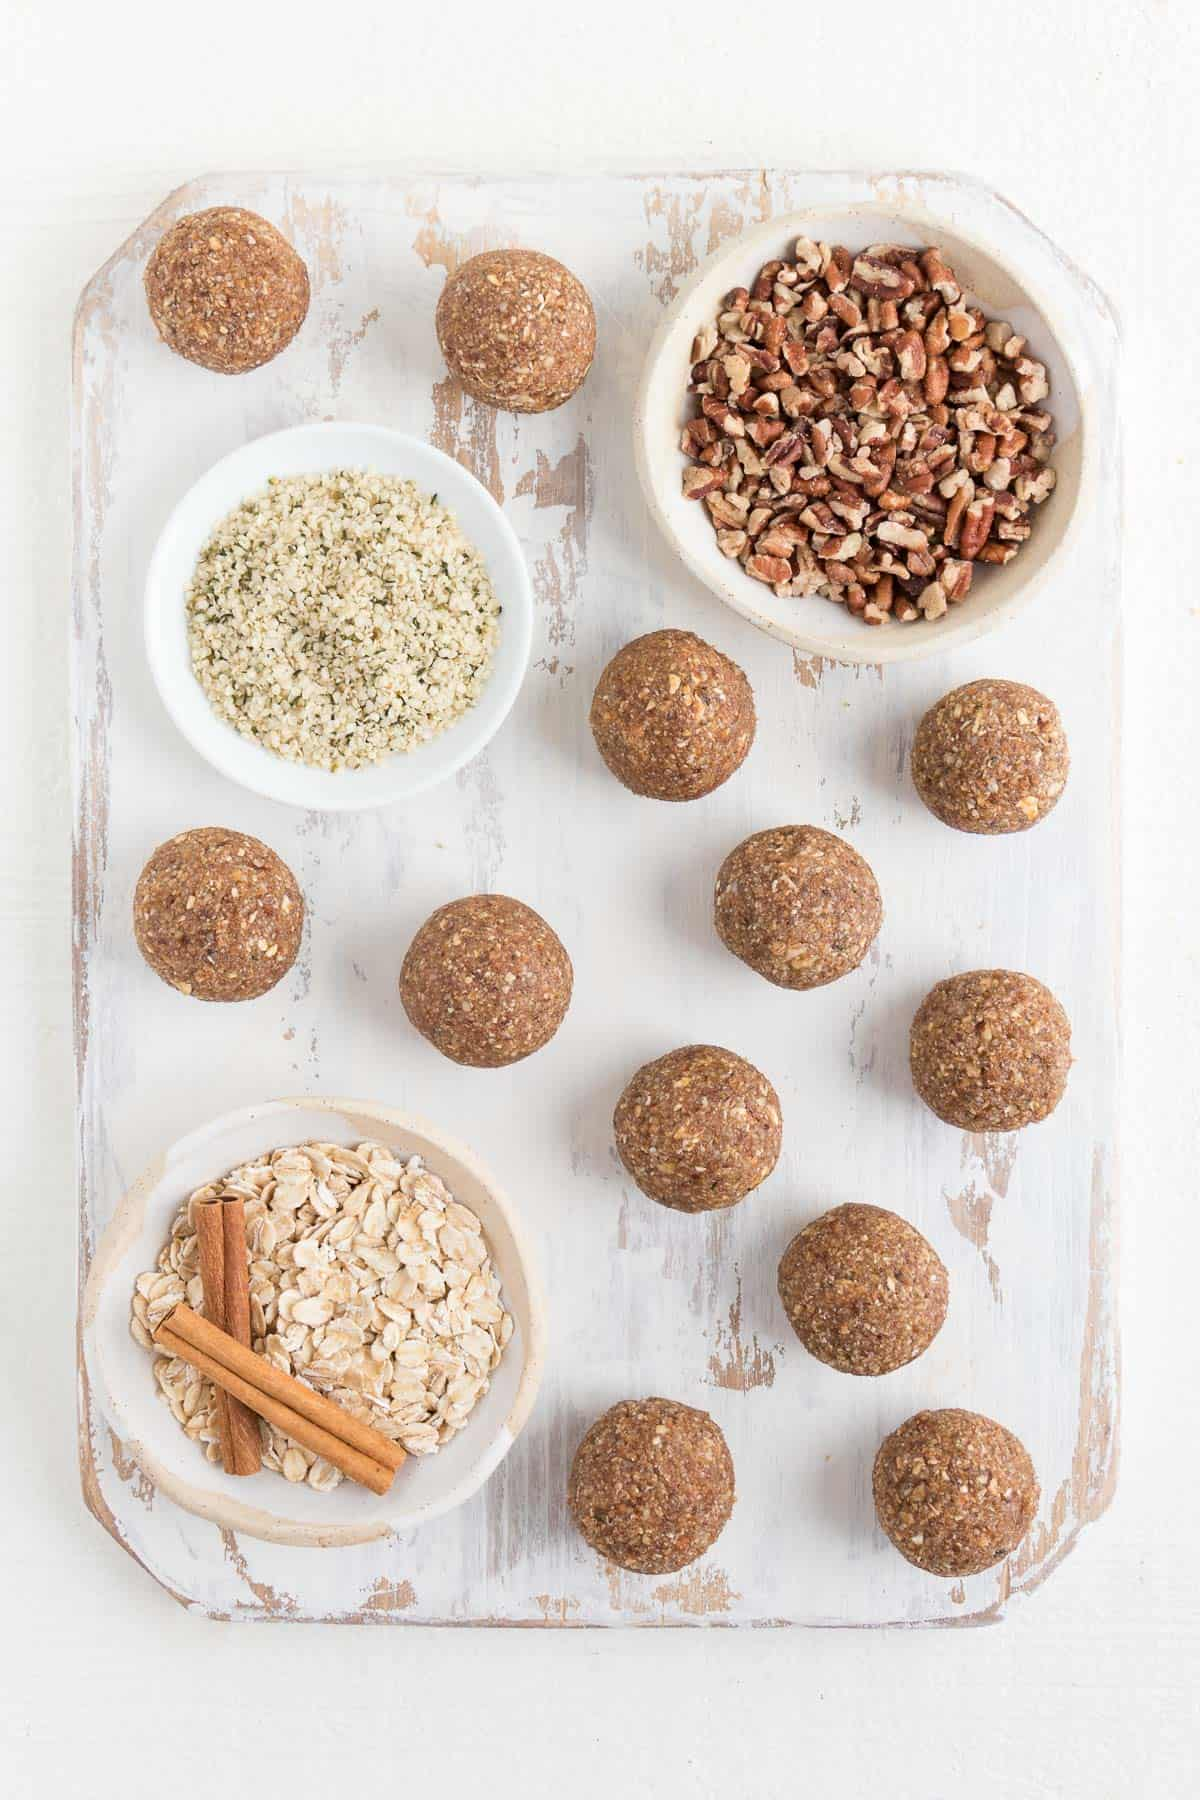 no-bake pecan balls on a white distressed cutting board with small bowls of cinnamon, oats, pecans, and hemp seeds